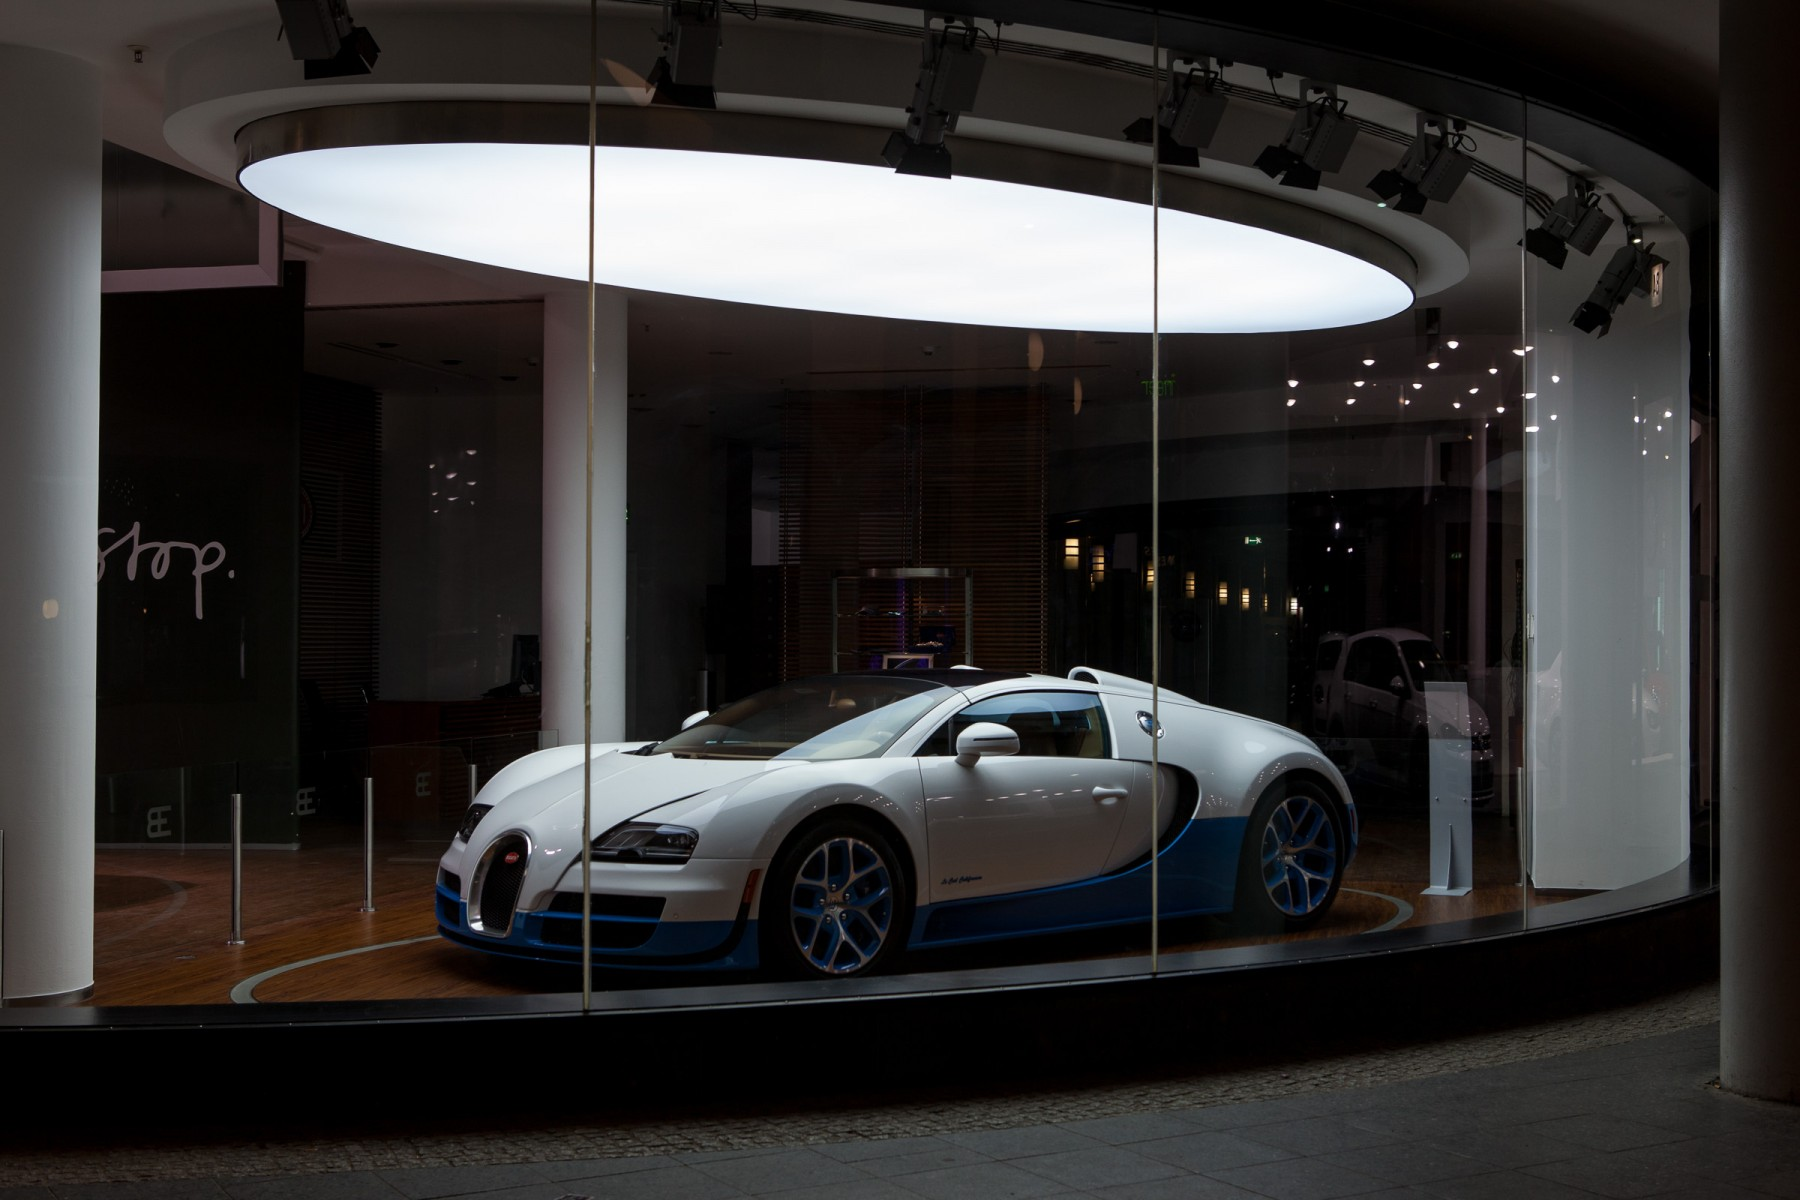 Bugatti Veyron showroom in Berlin